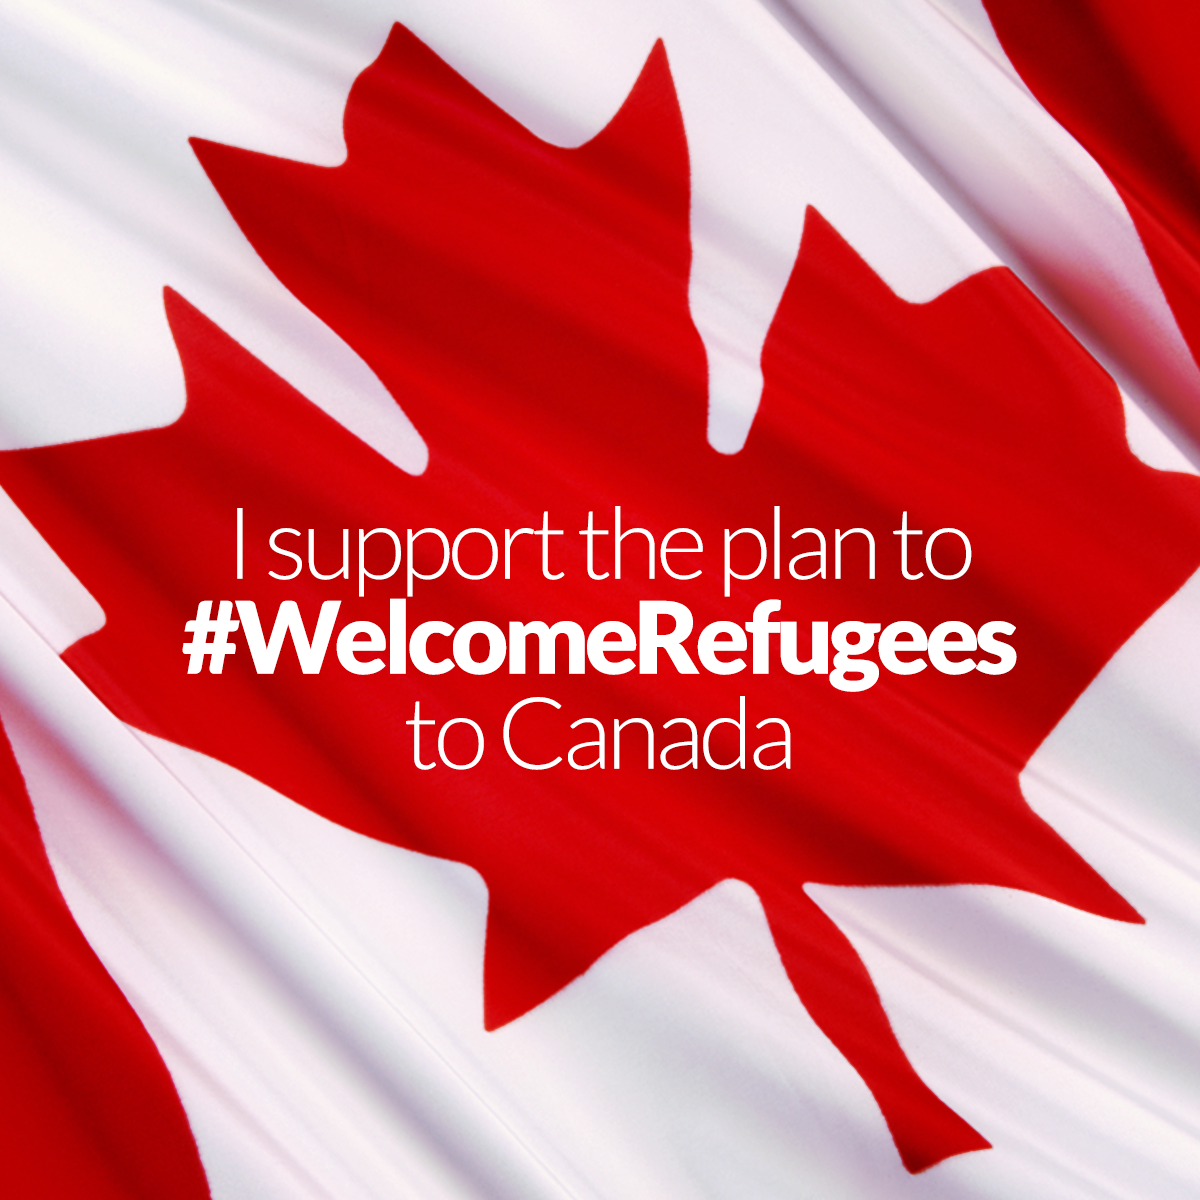 It's time for Canadians to open our hearts to refugees from the Syrian Civil war. Please share. #WelcomeRefugees https://t.co/5NL9lLT9lV